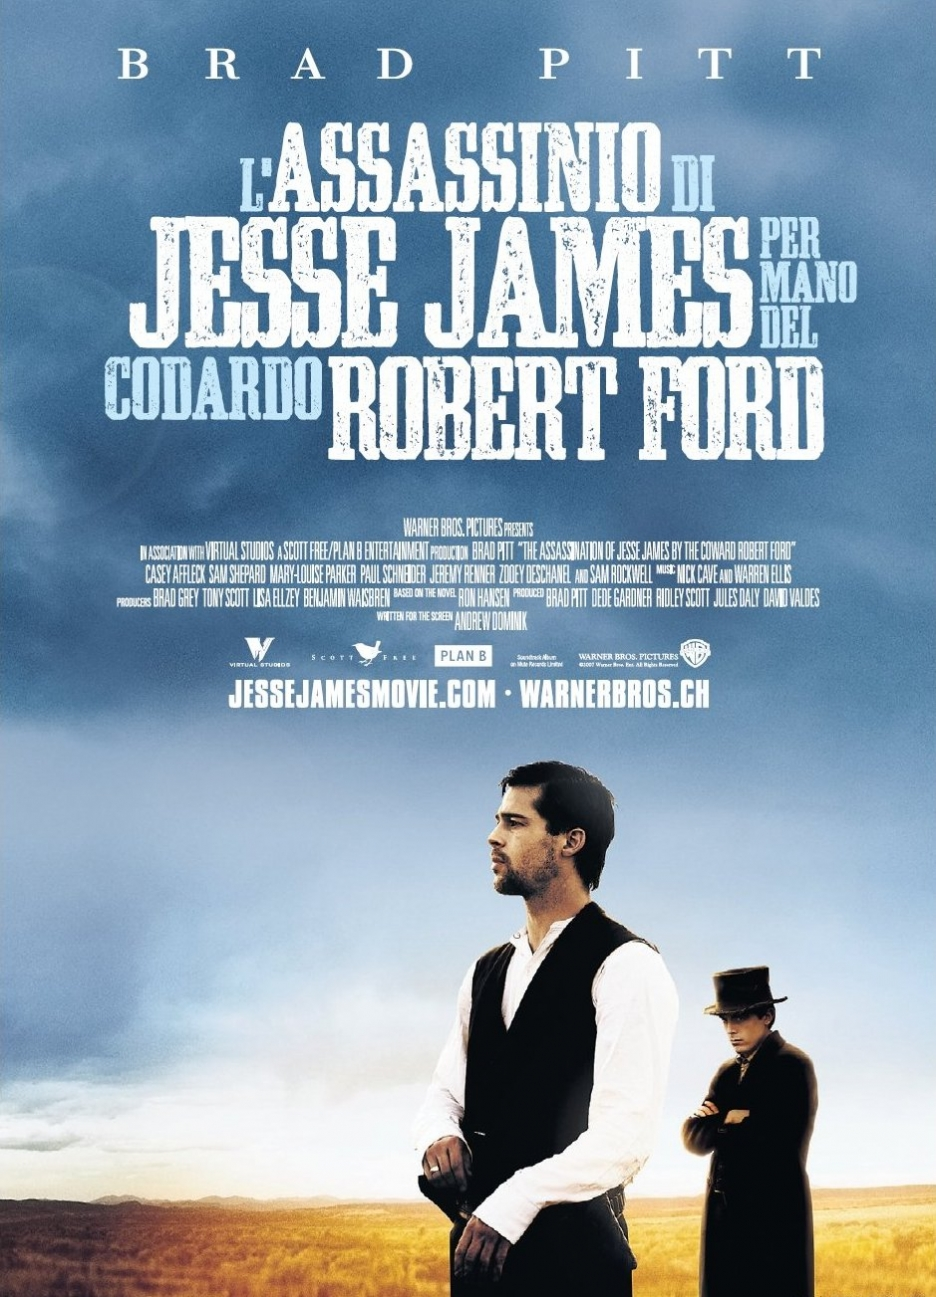 Aero Theatre Presents: The Assassination of Jesse James by The Coward Robert Ford